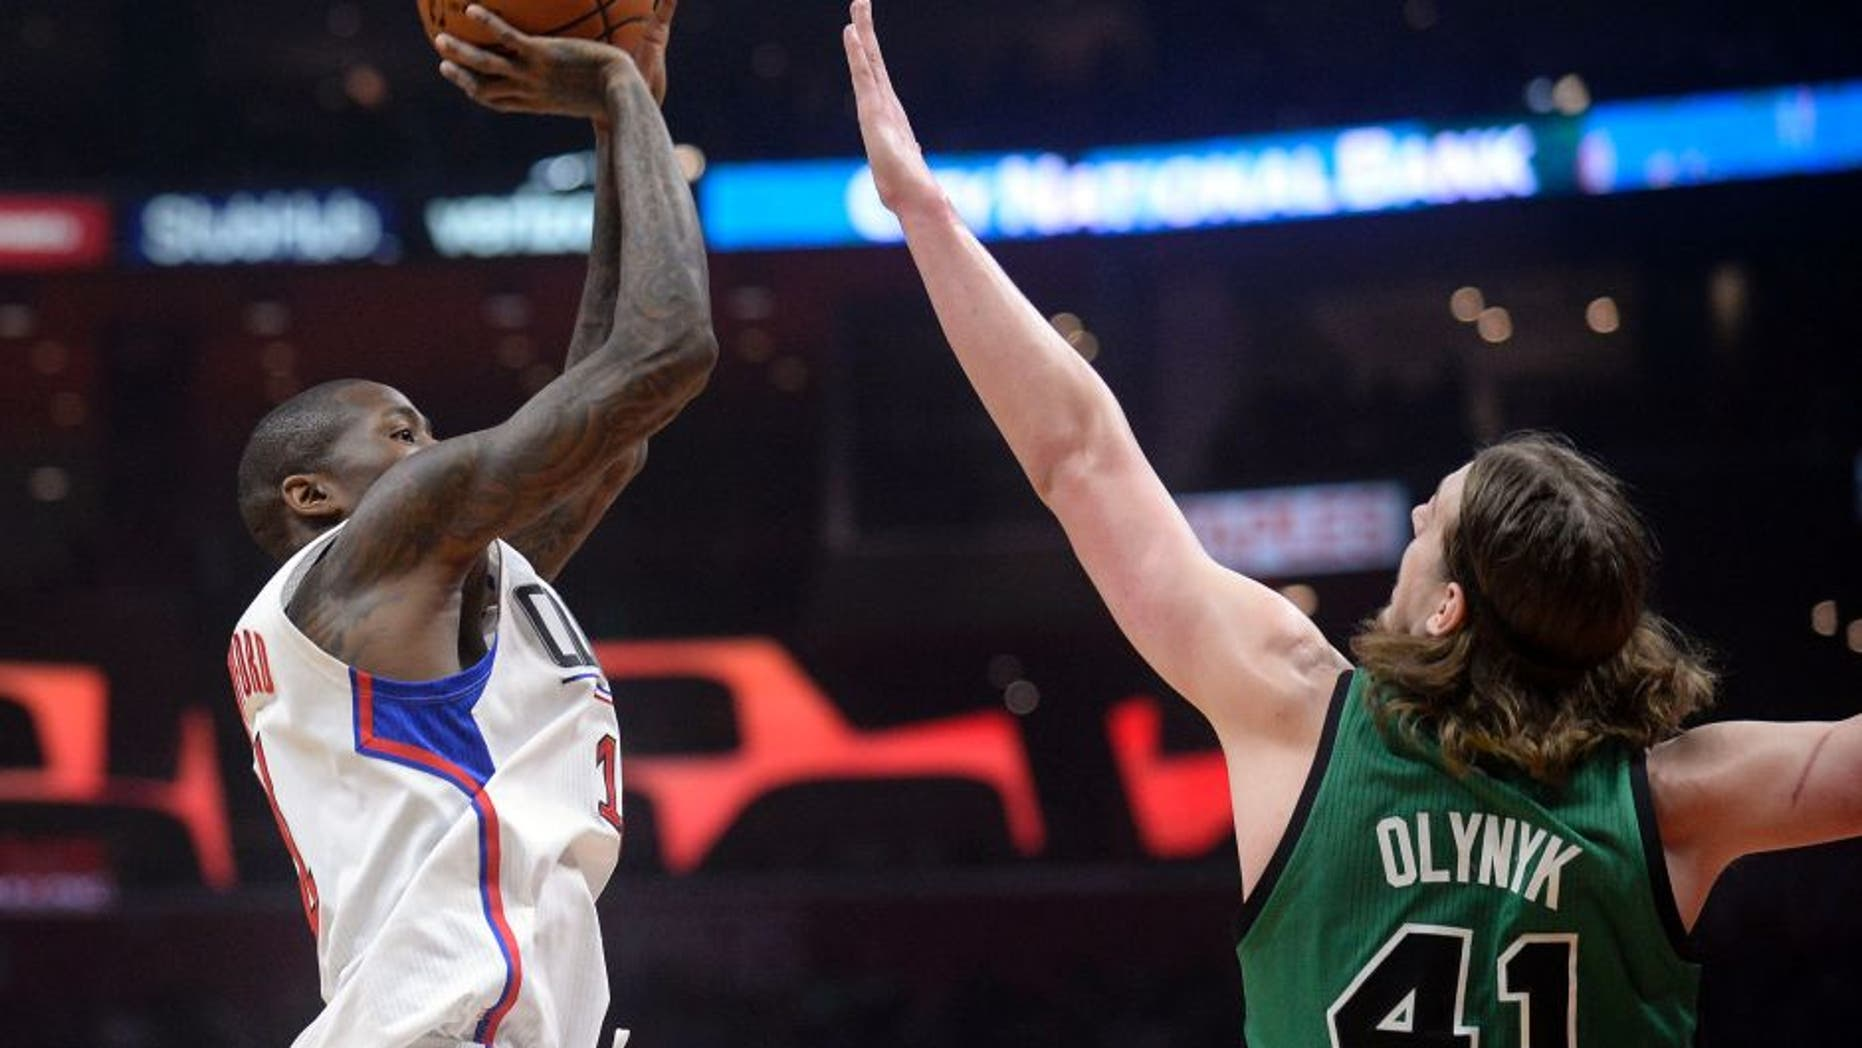 March 6, 2017; Los Angeles, CA, USA; Los Angeles Clippers guard Jamal Crawford (11) shoots against the defense of Boston Celtics center Kelly Olynyk (41) during the first half at Staples Center. Mandatory Credit: Gary A. Vasquez-USA TODAY Sports